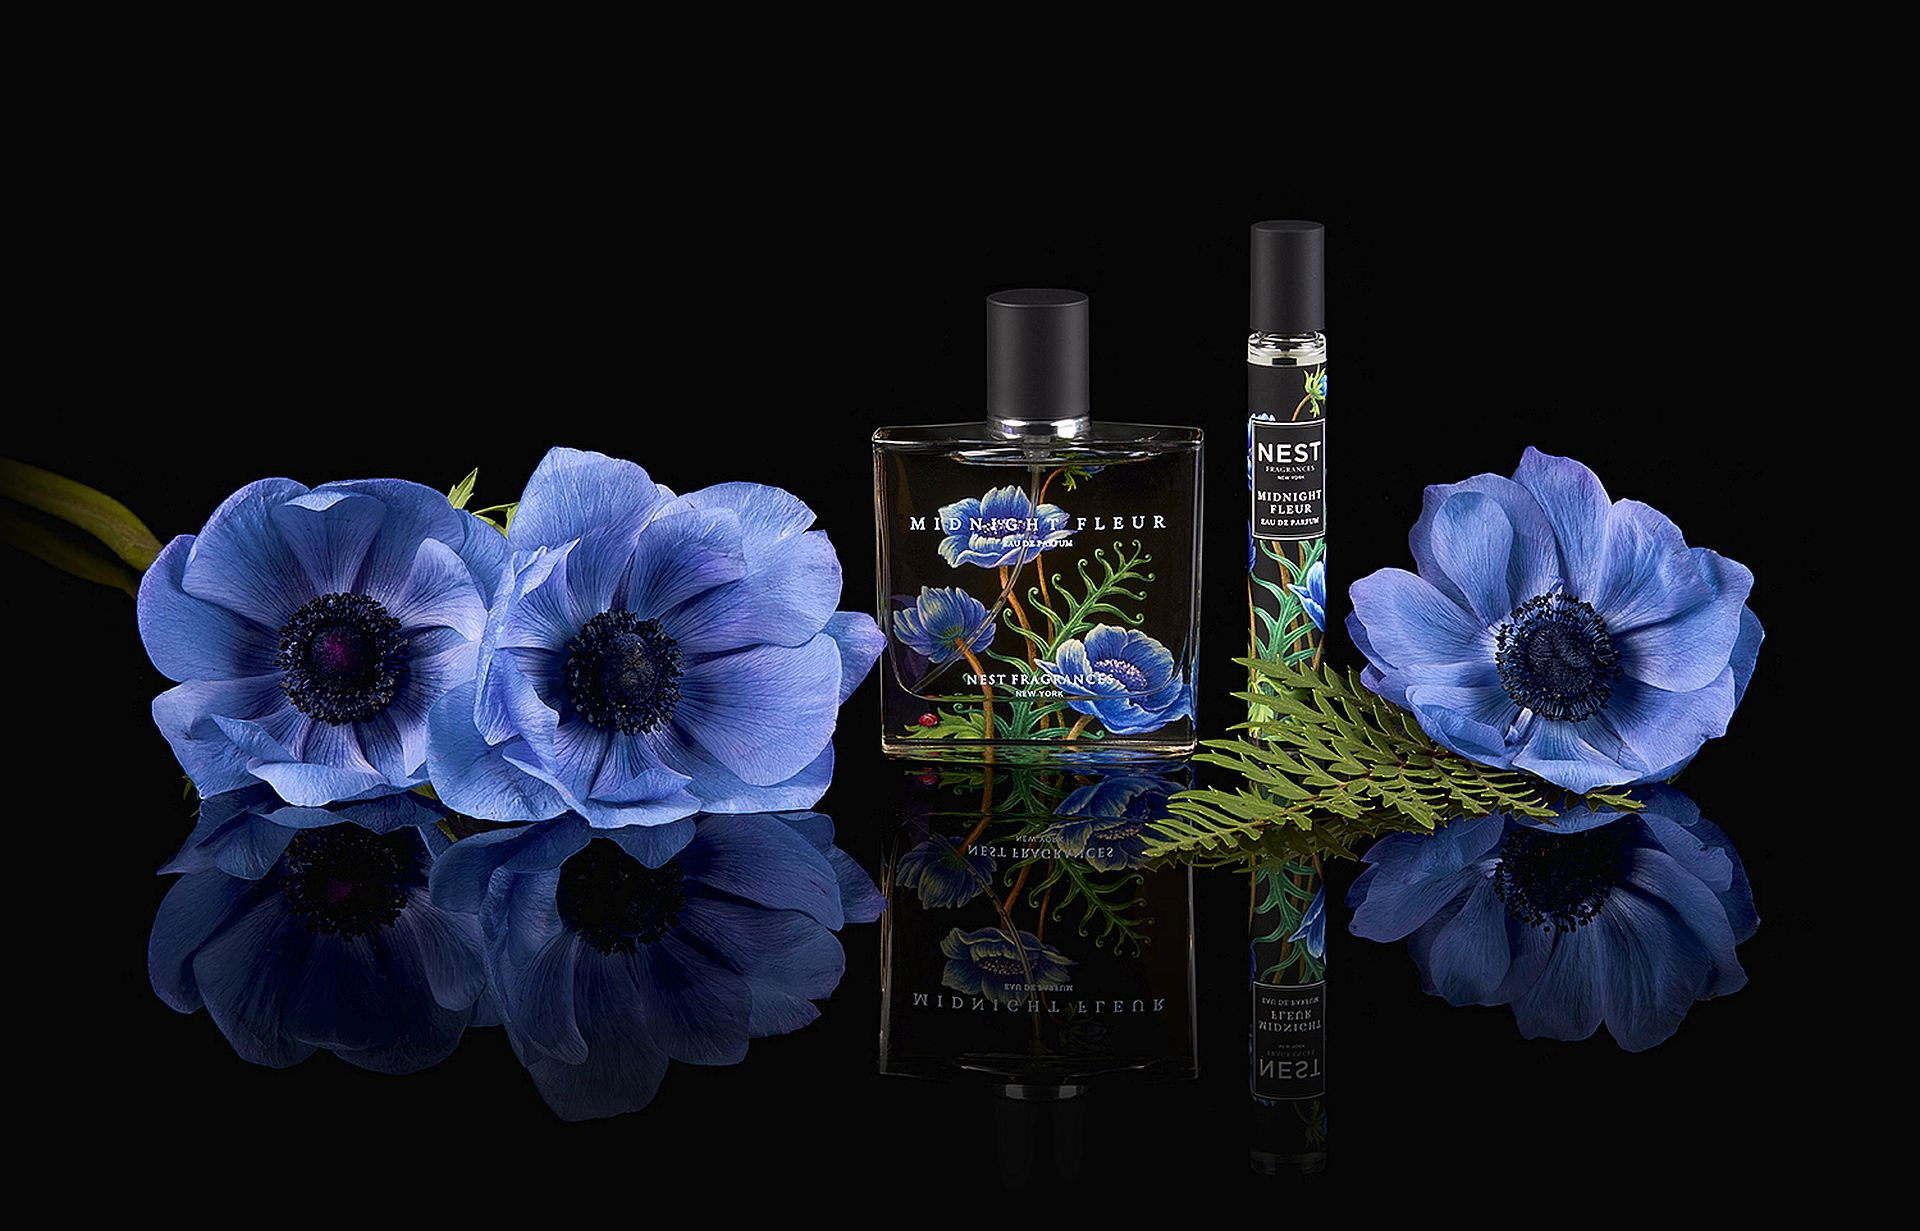 Fragrant Niche Marvel: Midnight Fleur by Nest